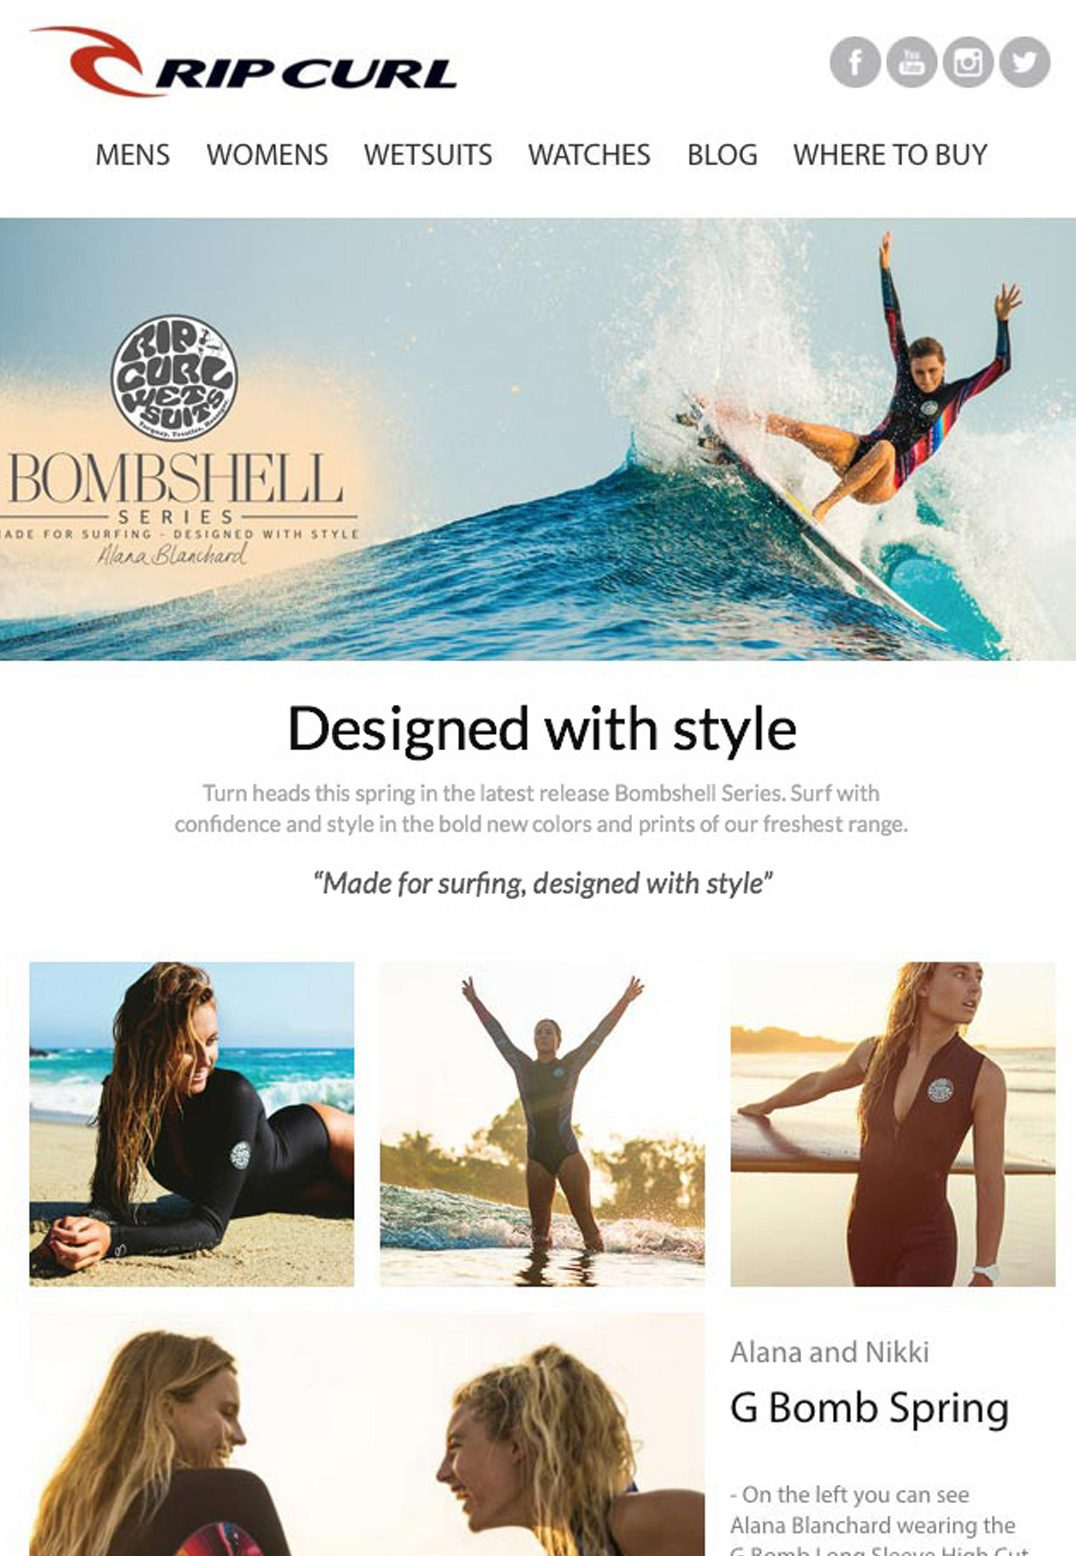 email marketing and automation examples - ripcurl email example